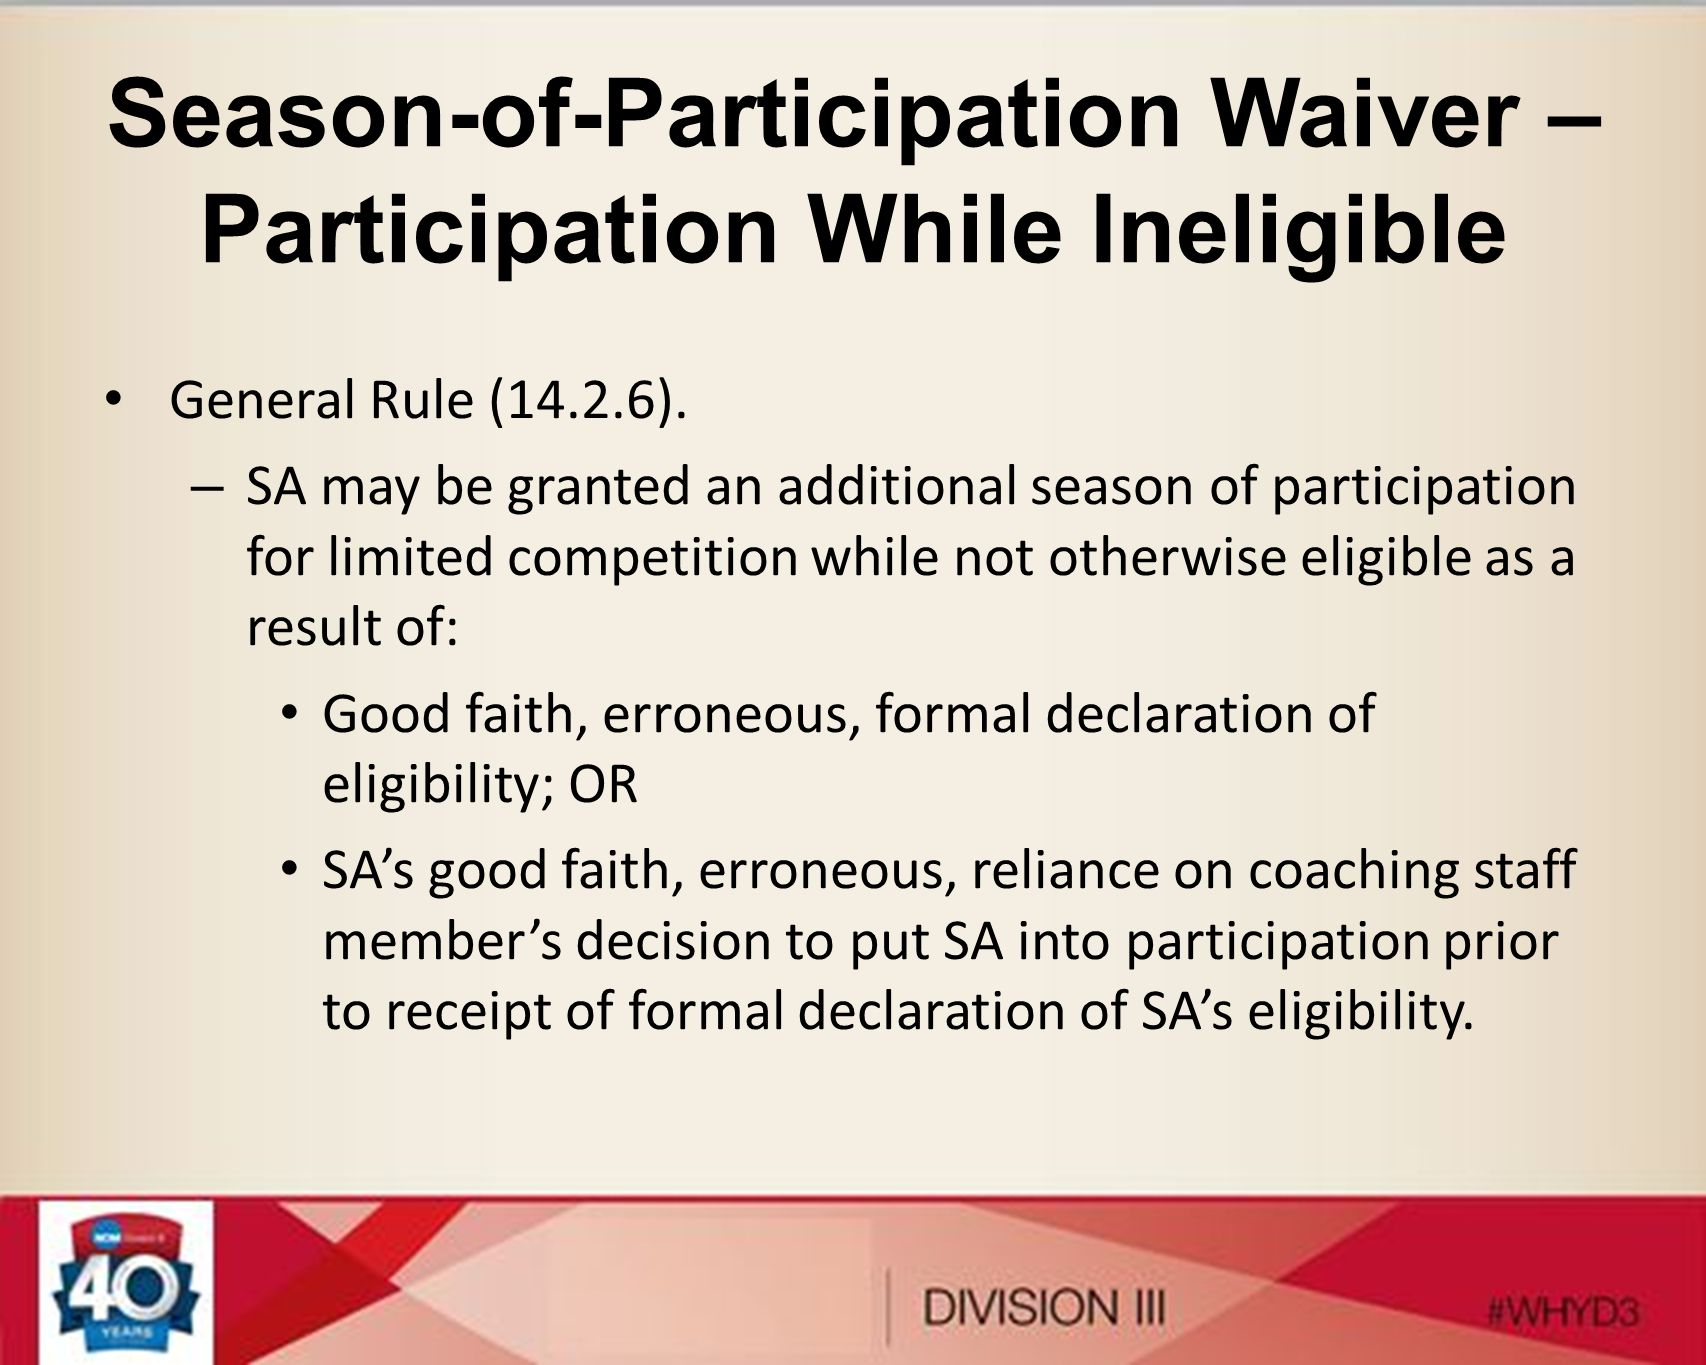 Season-of-Participation Waiver – Participation While Ineligible General Rule (14.2.6).